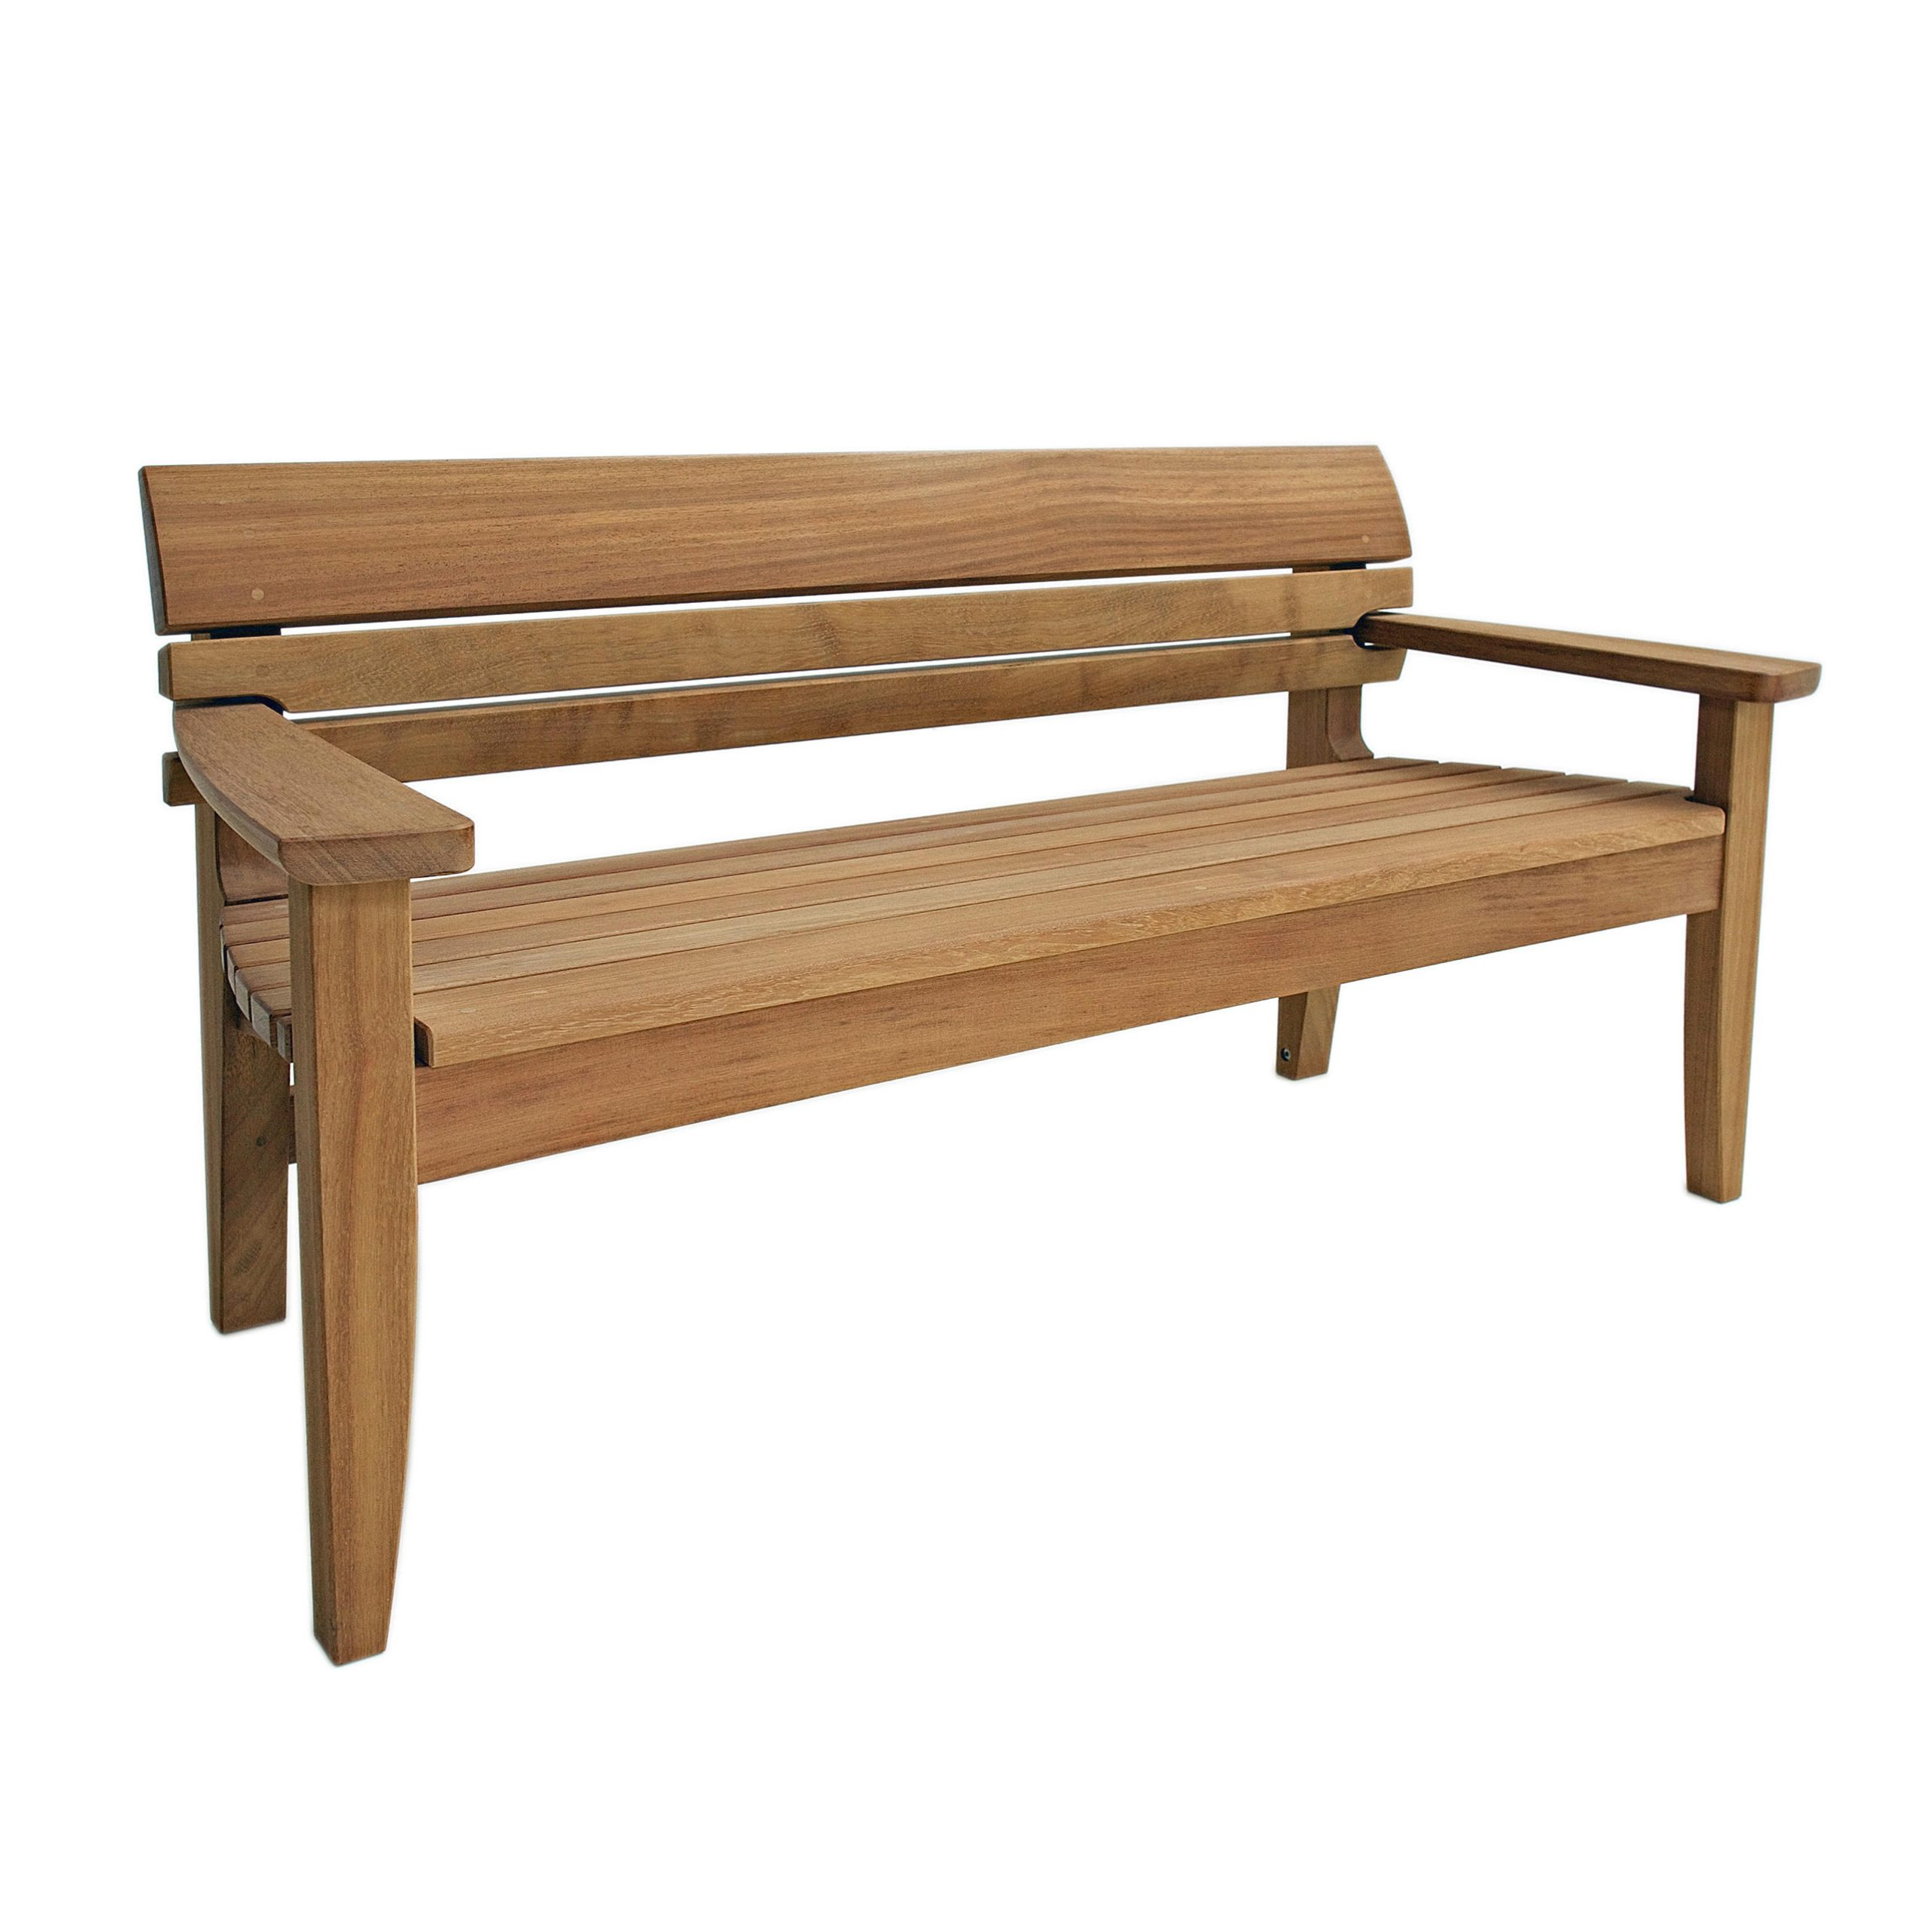 Chico Full Bench & Designer Furniture | Architonic With Regard To Pauls Steel Garden Benches (View 14 of 25)